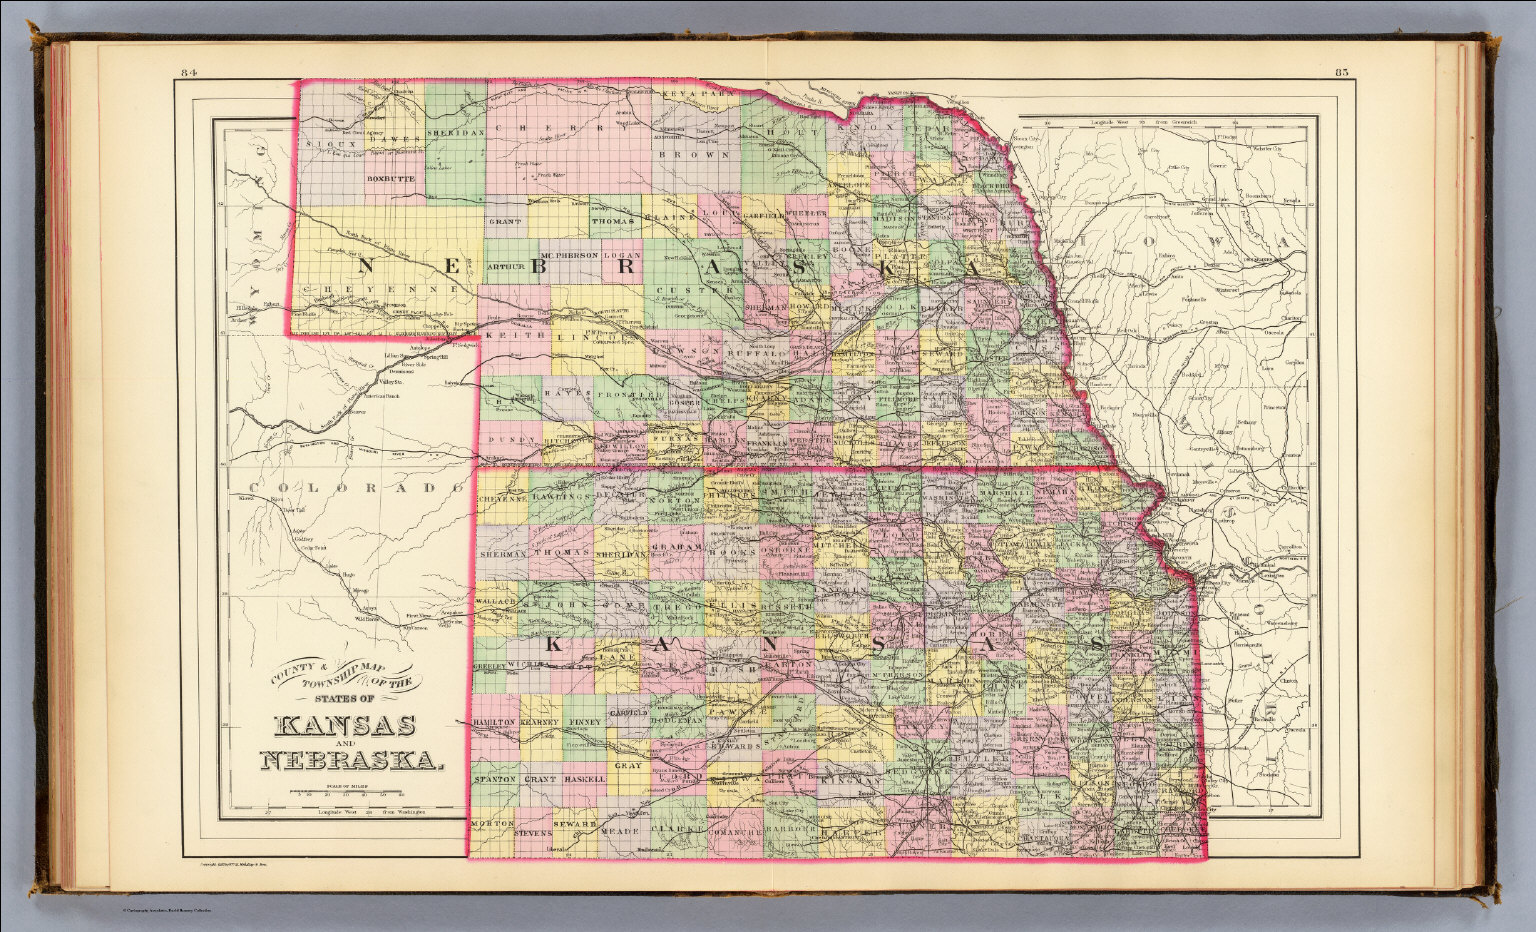 Kansas Nebraska David Rumsey Historical Map Collection - Nebr map